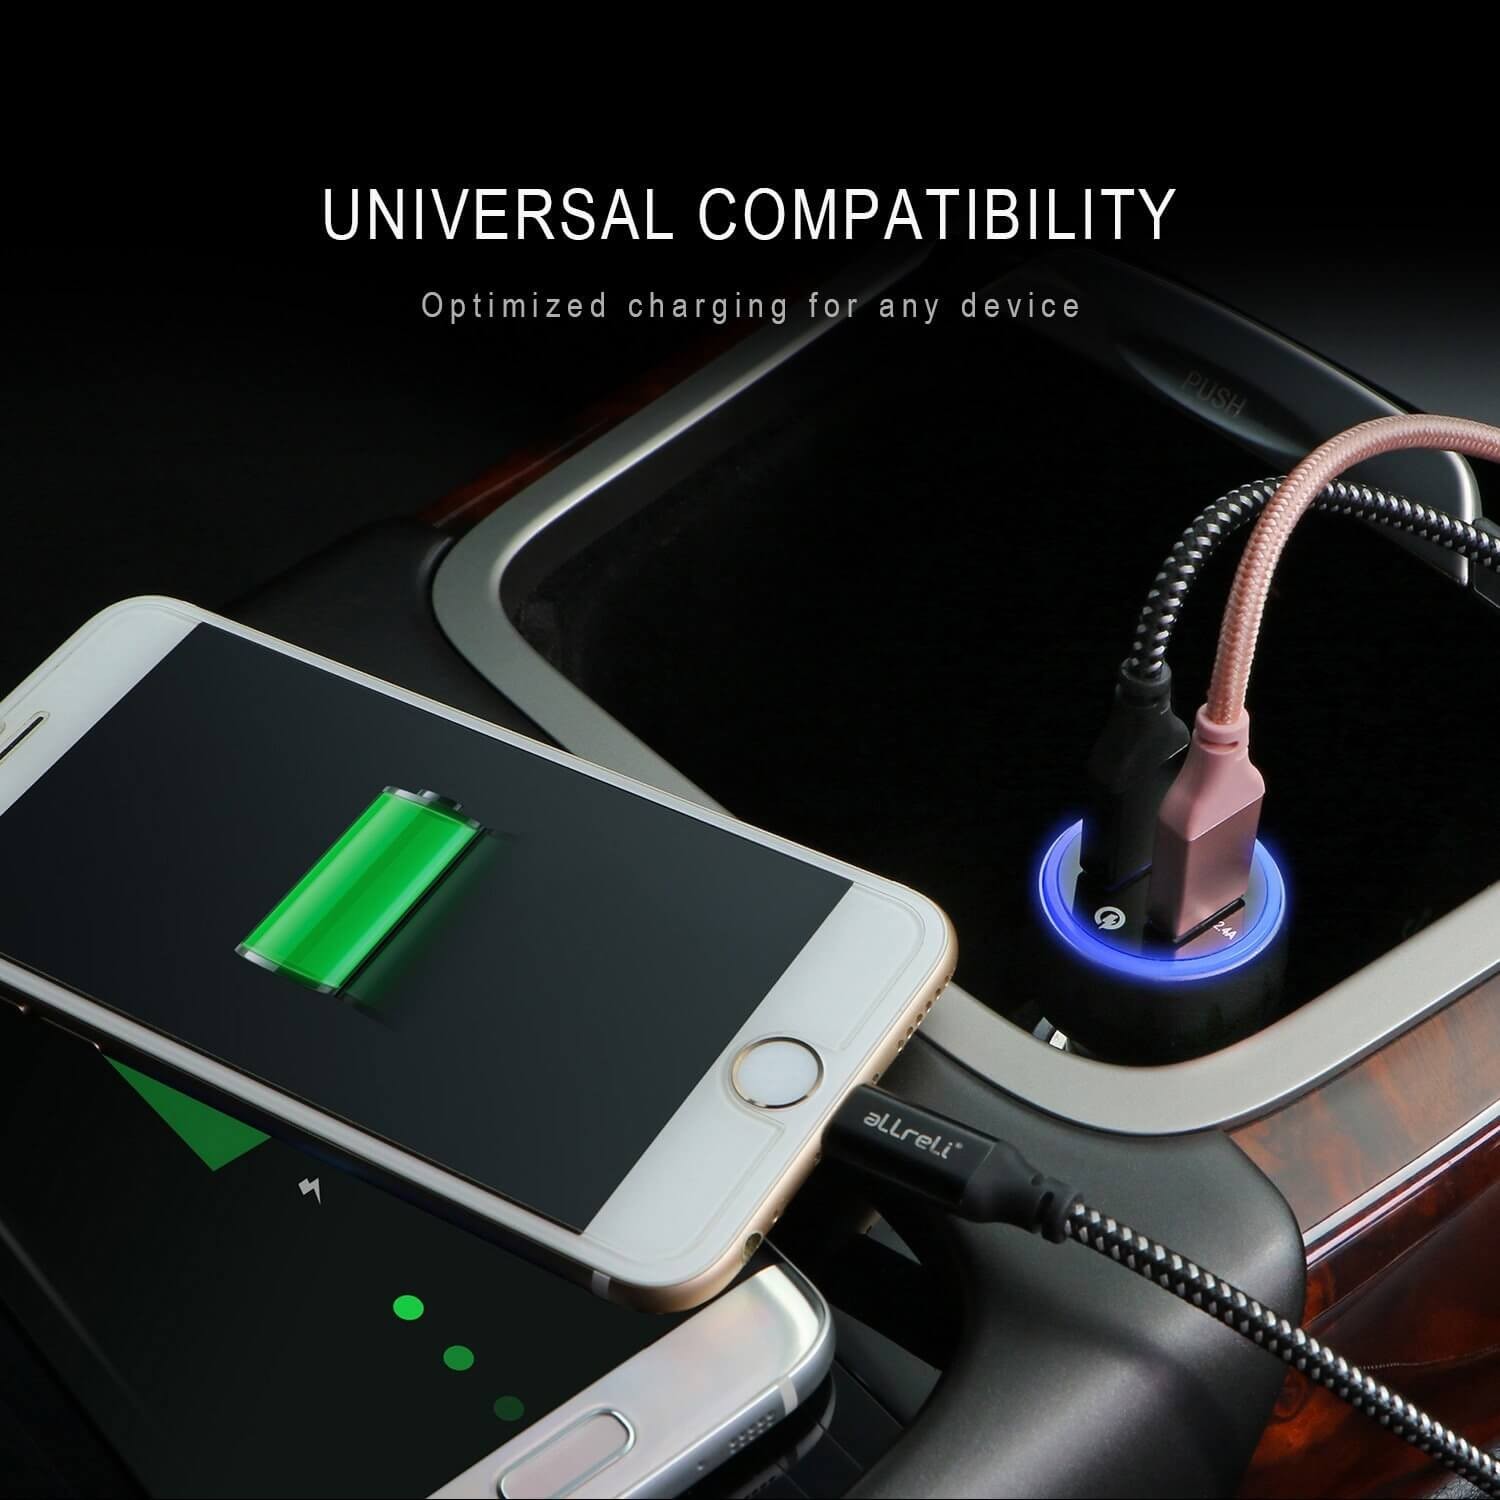 aLLreLi 30W Dual USB Car Charger with Smart IC Tech (Built-in Safety Protection) for Smartphone ...